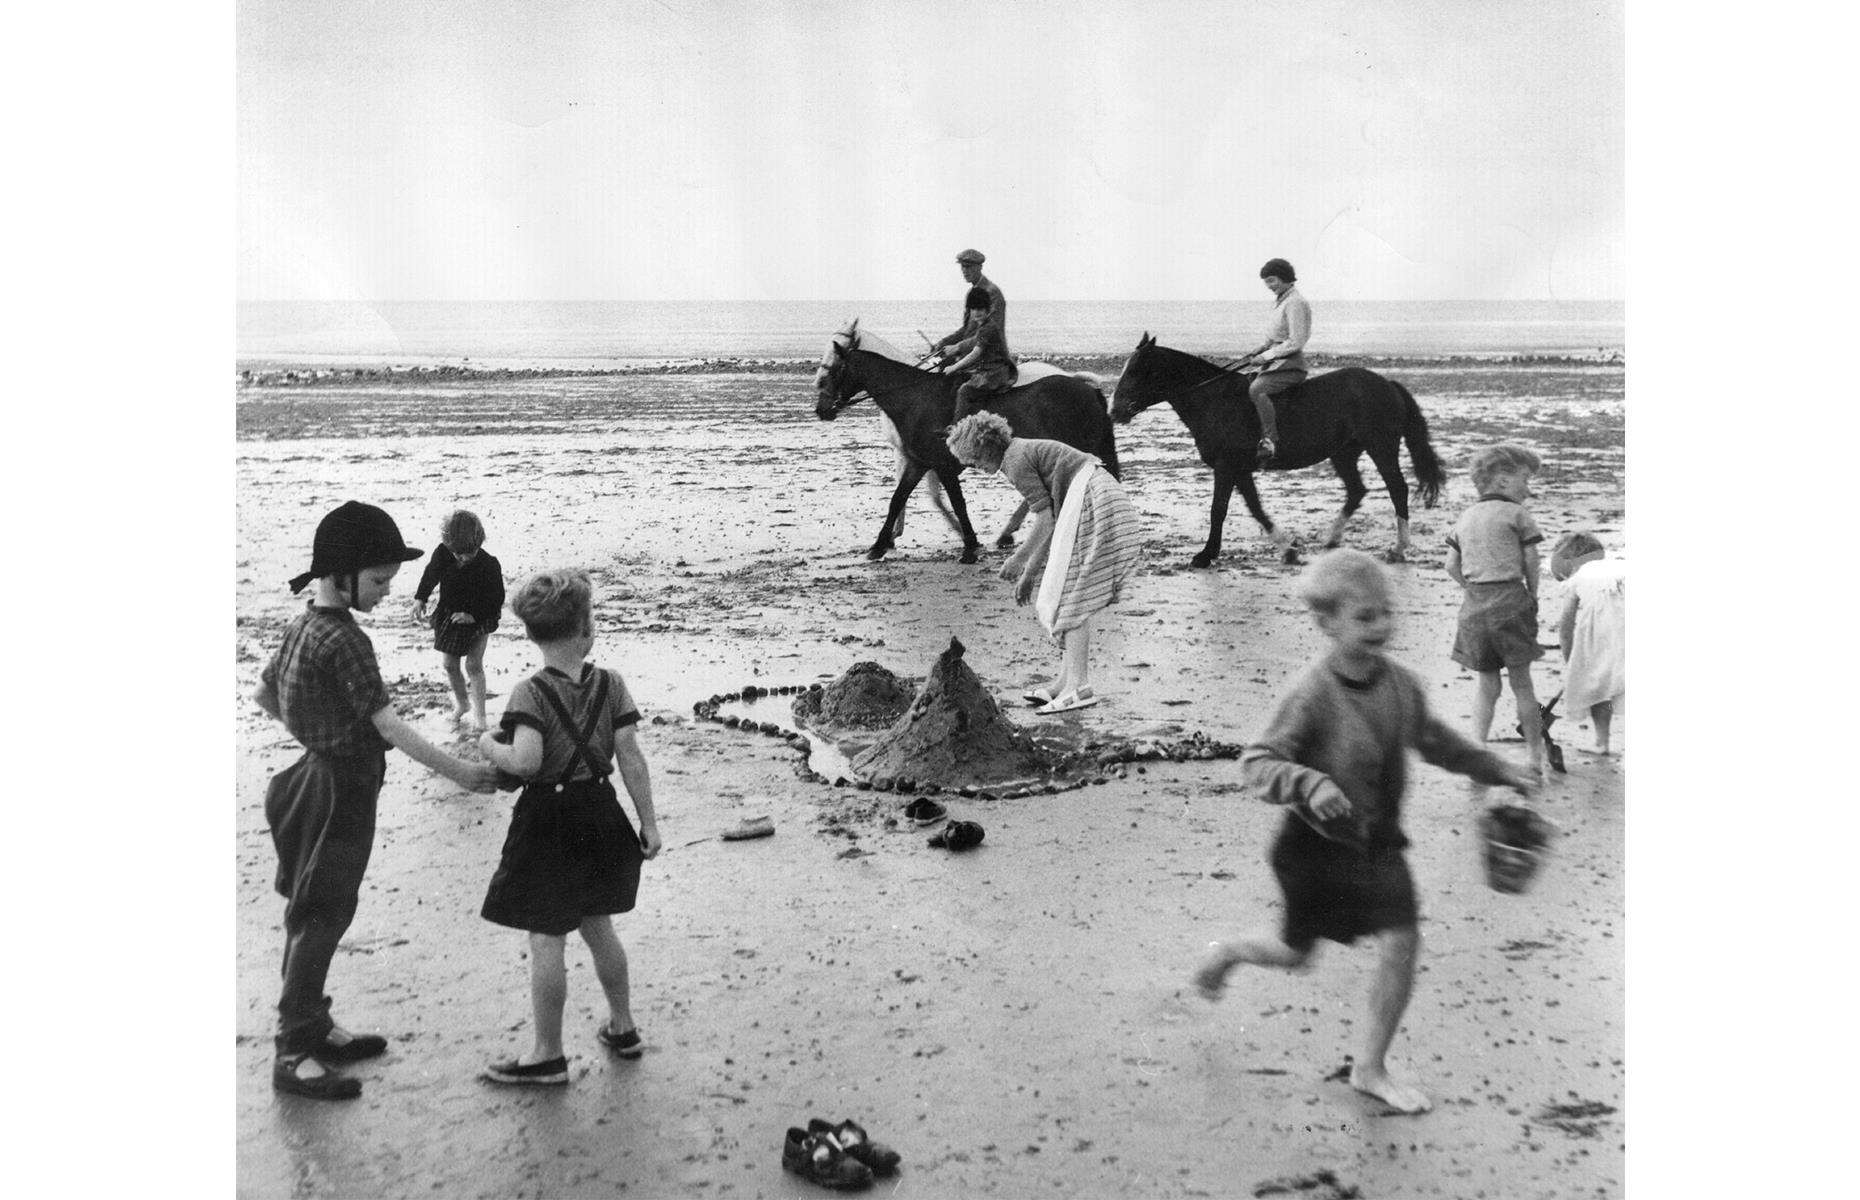 Slide 15 of 38: The seaside escape remained the ultimate British vacation through the 1950s –think ice cream and fish and chips, pony rides and puppet shows, and the windswept shores of the English coast. In this 1954 photo, families play on the sand in Angmering in West Sussex.